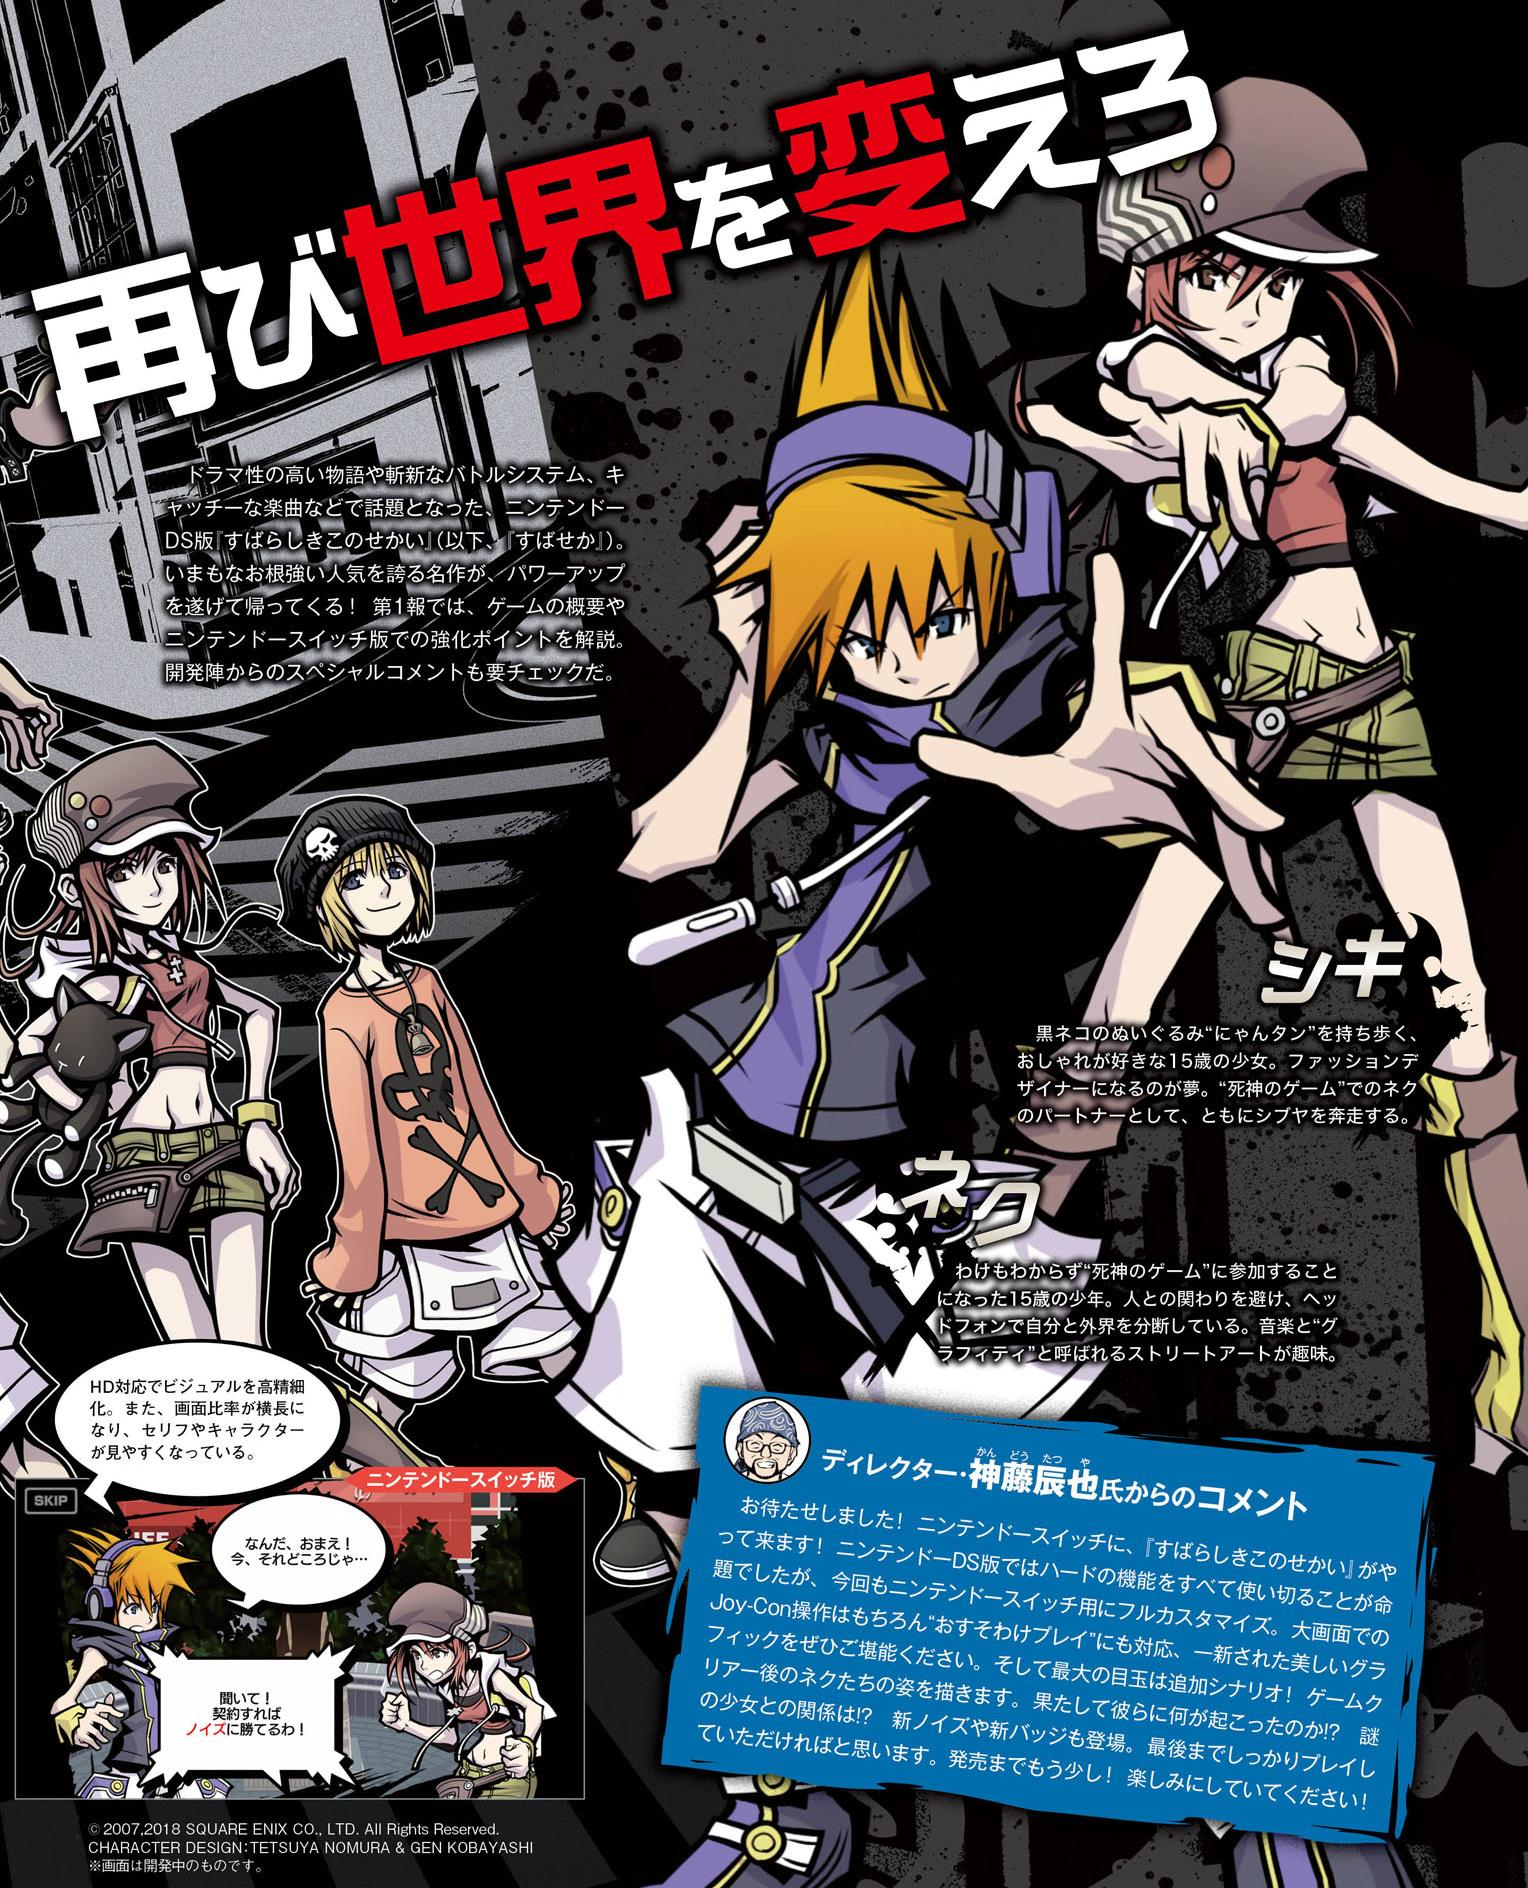 Beaches] The world ends with you 2